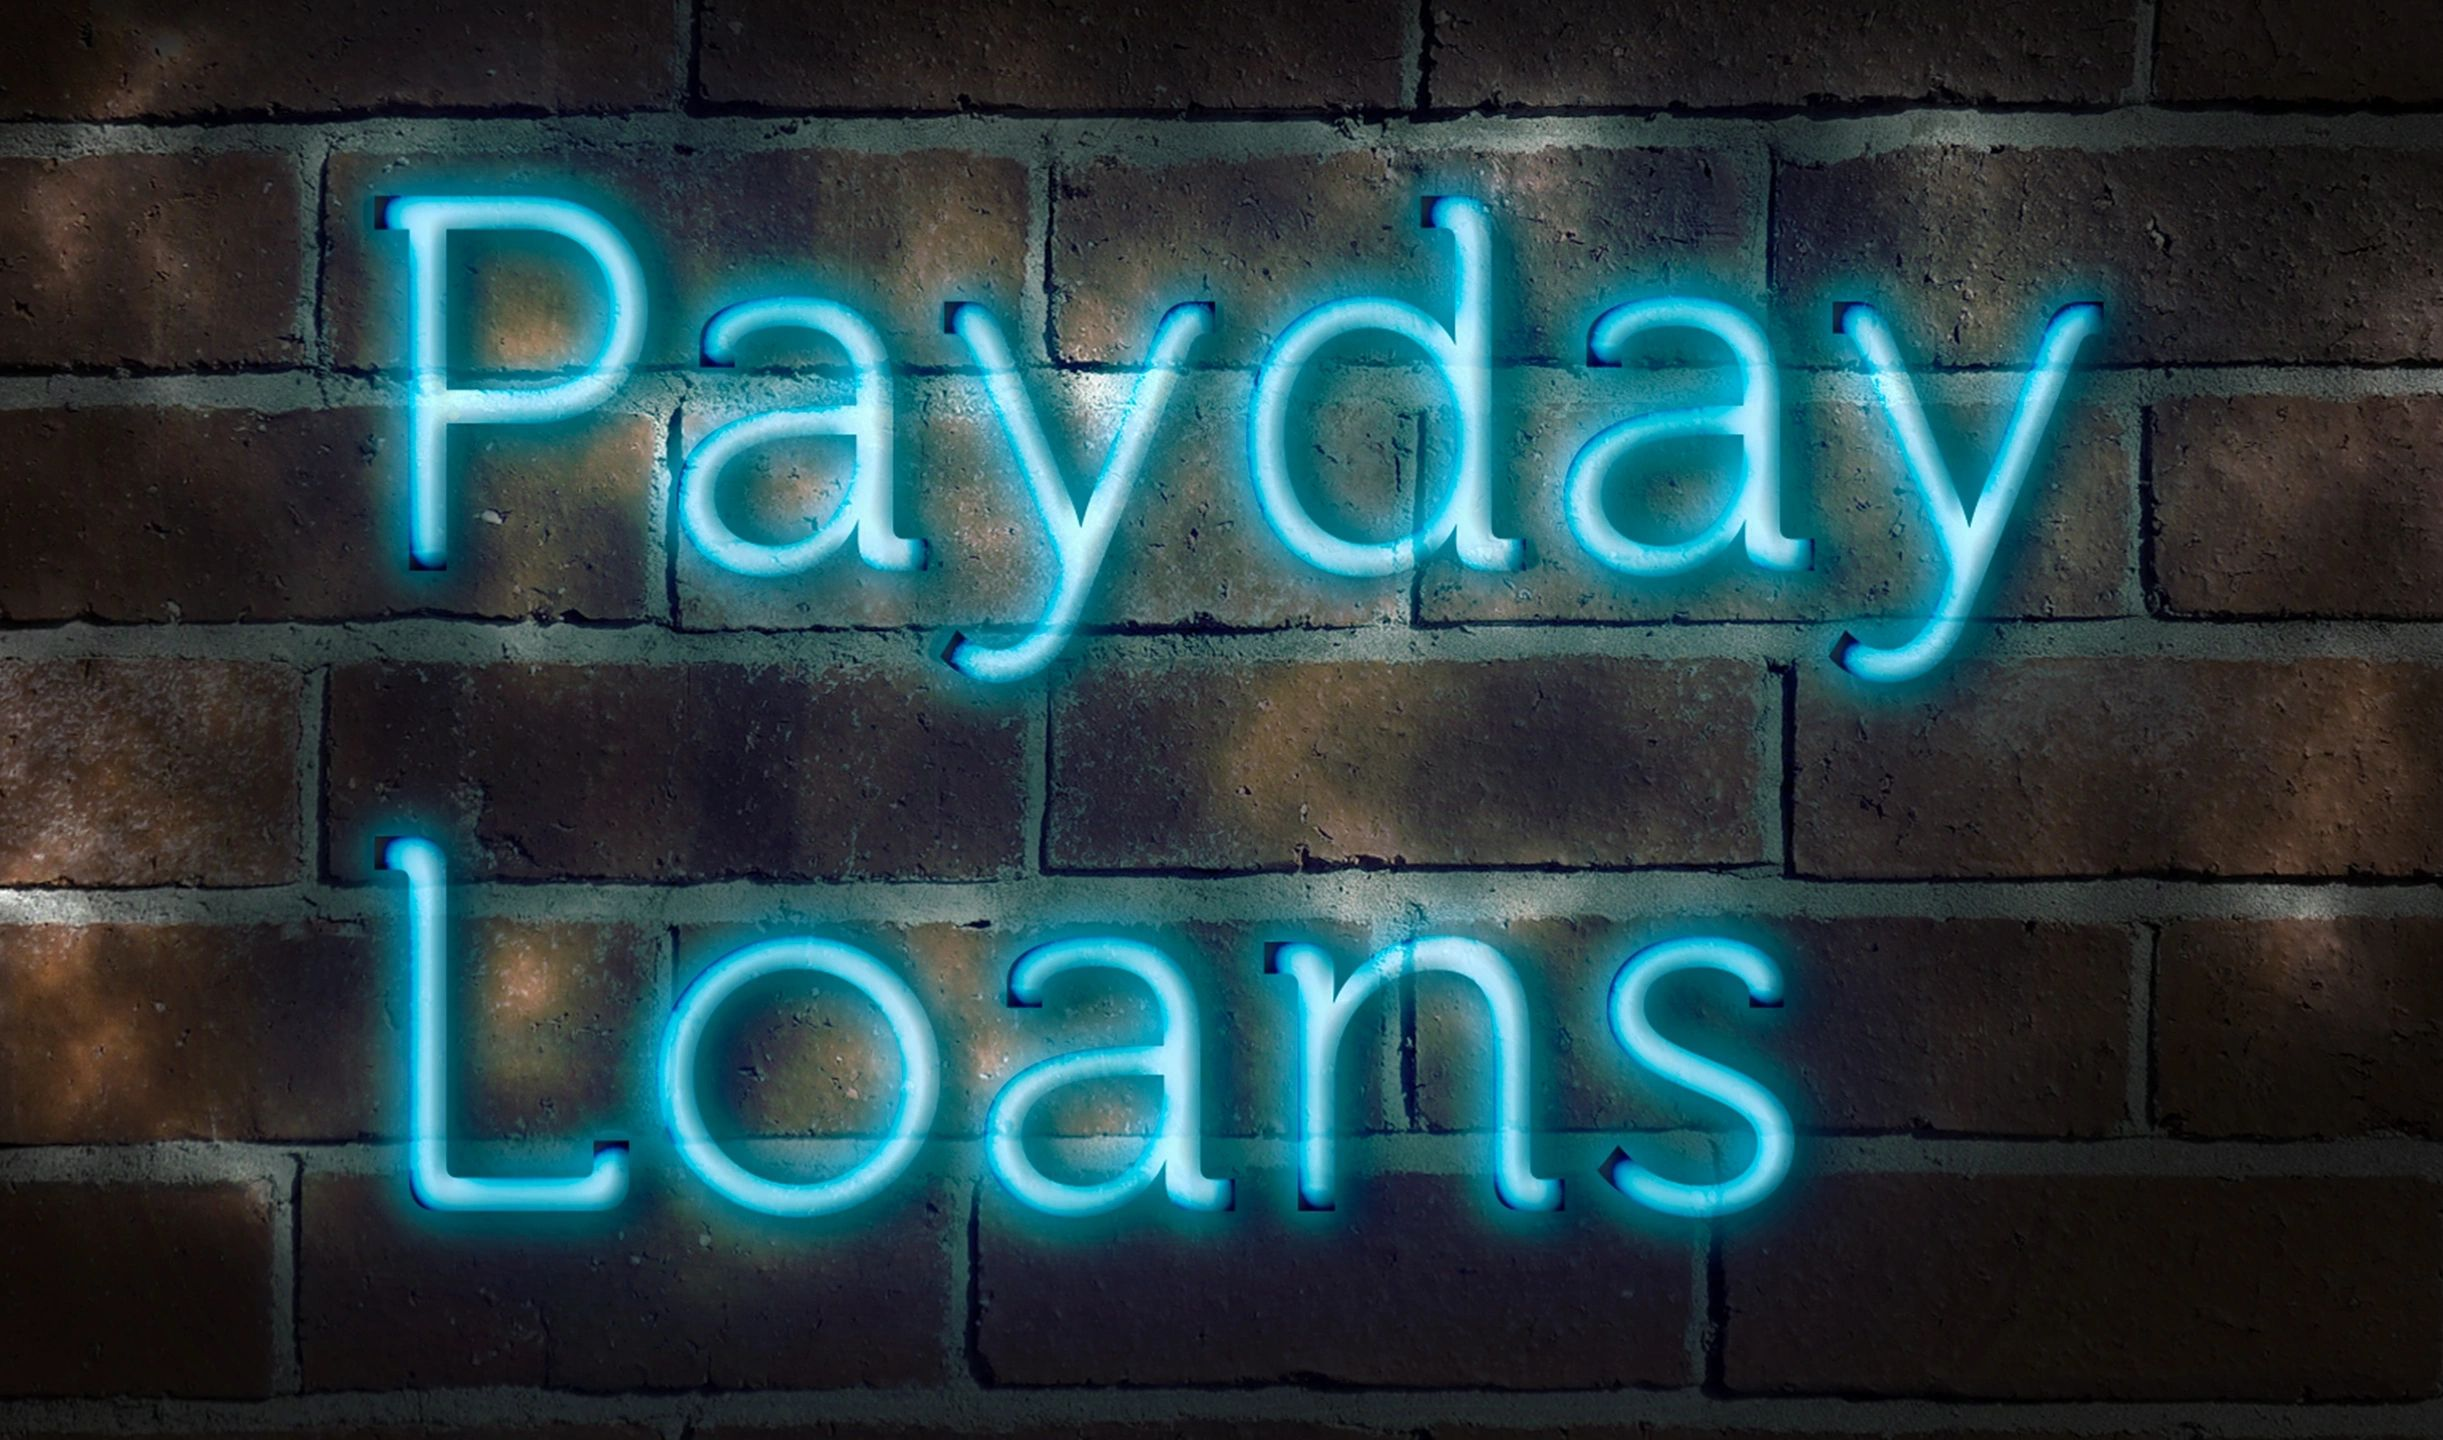 Ohio payday loan online photo 2